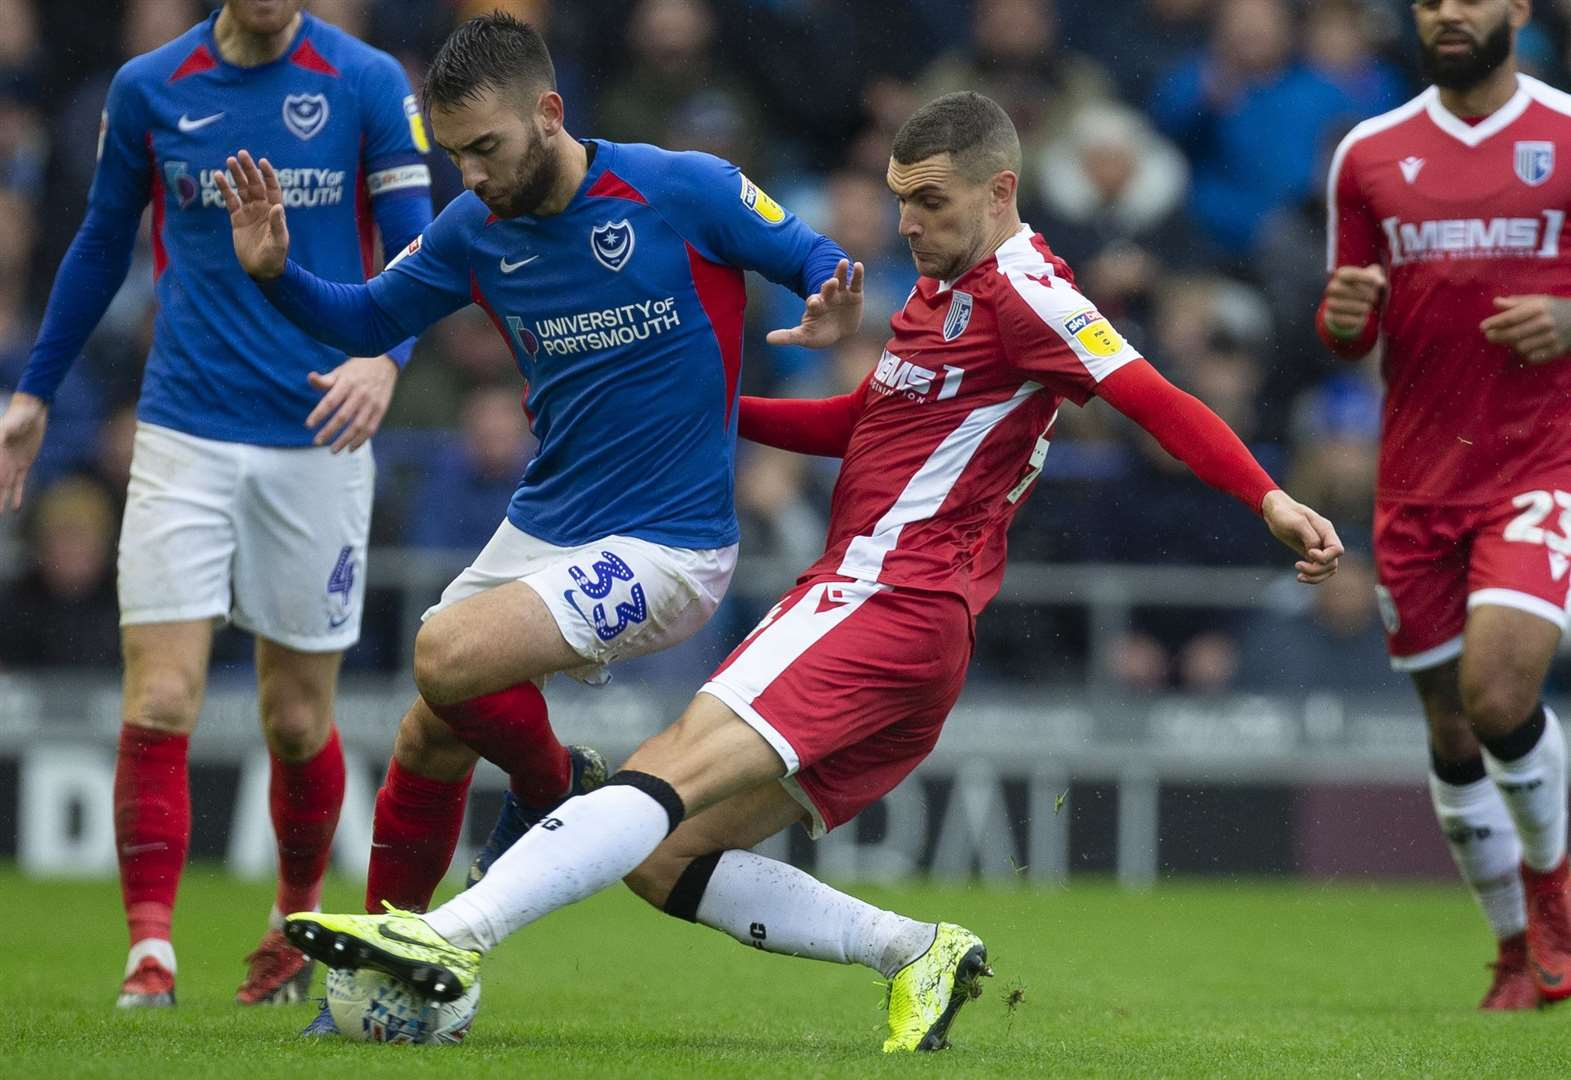 Size isn't everything says Gills' all-action midfielder